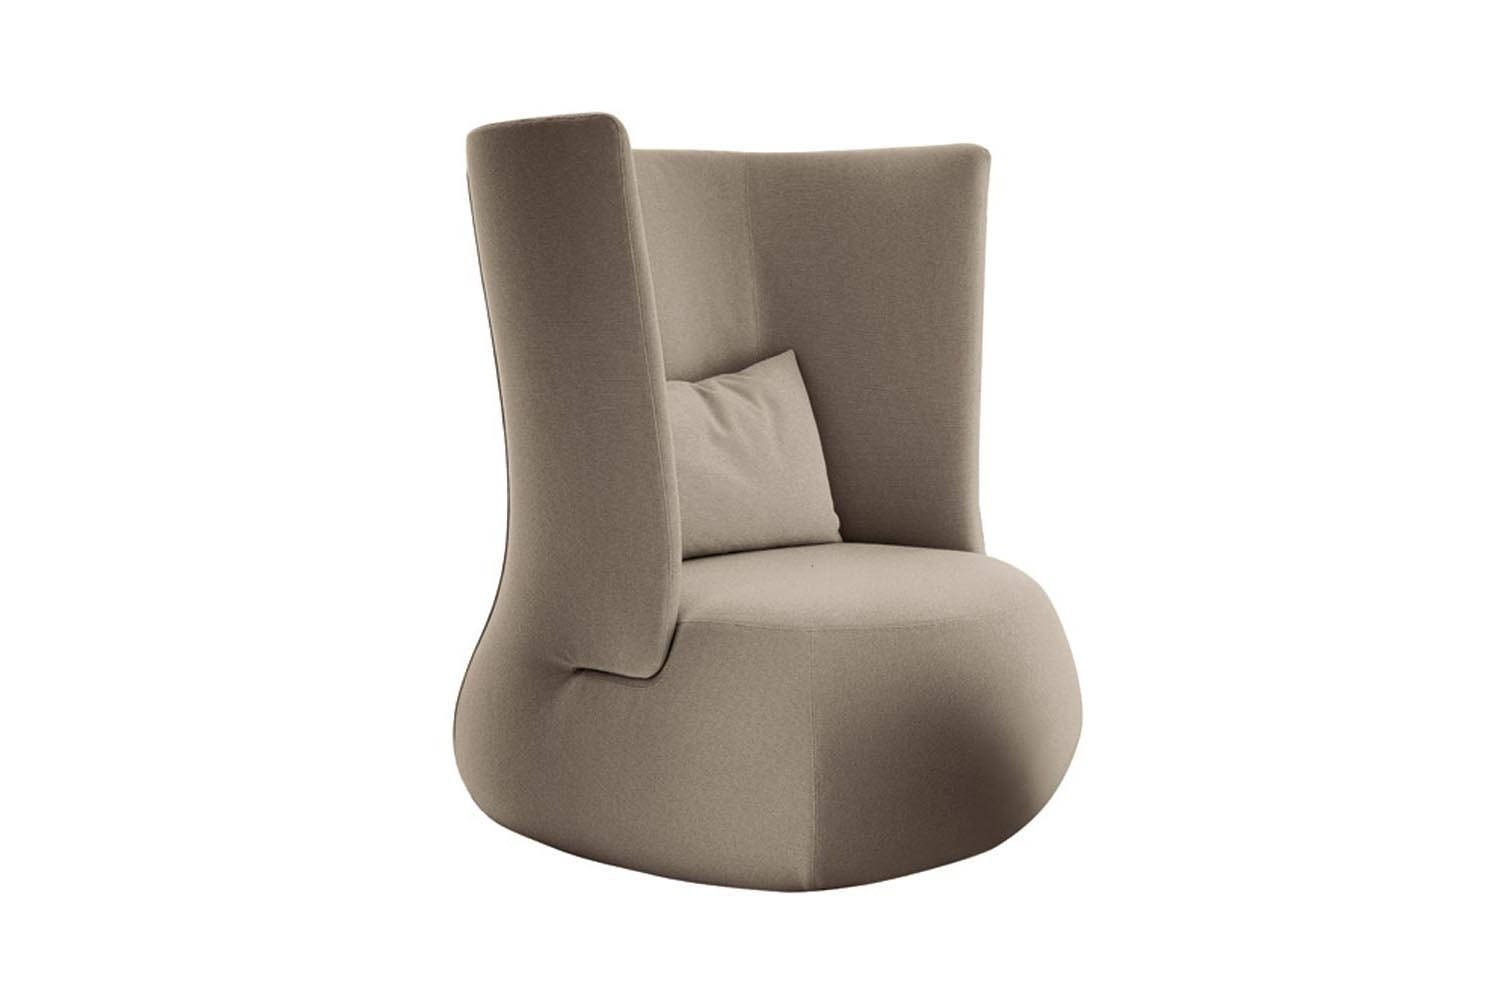 Fat-Sofa Armchair by Patricia Urquiola for B&B Italia